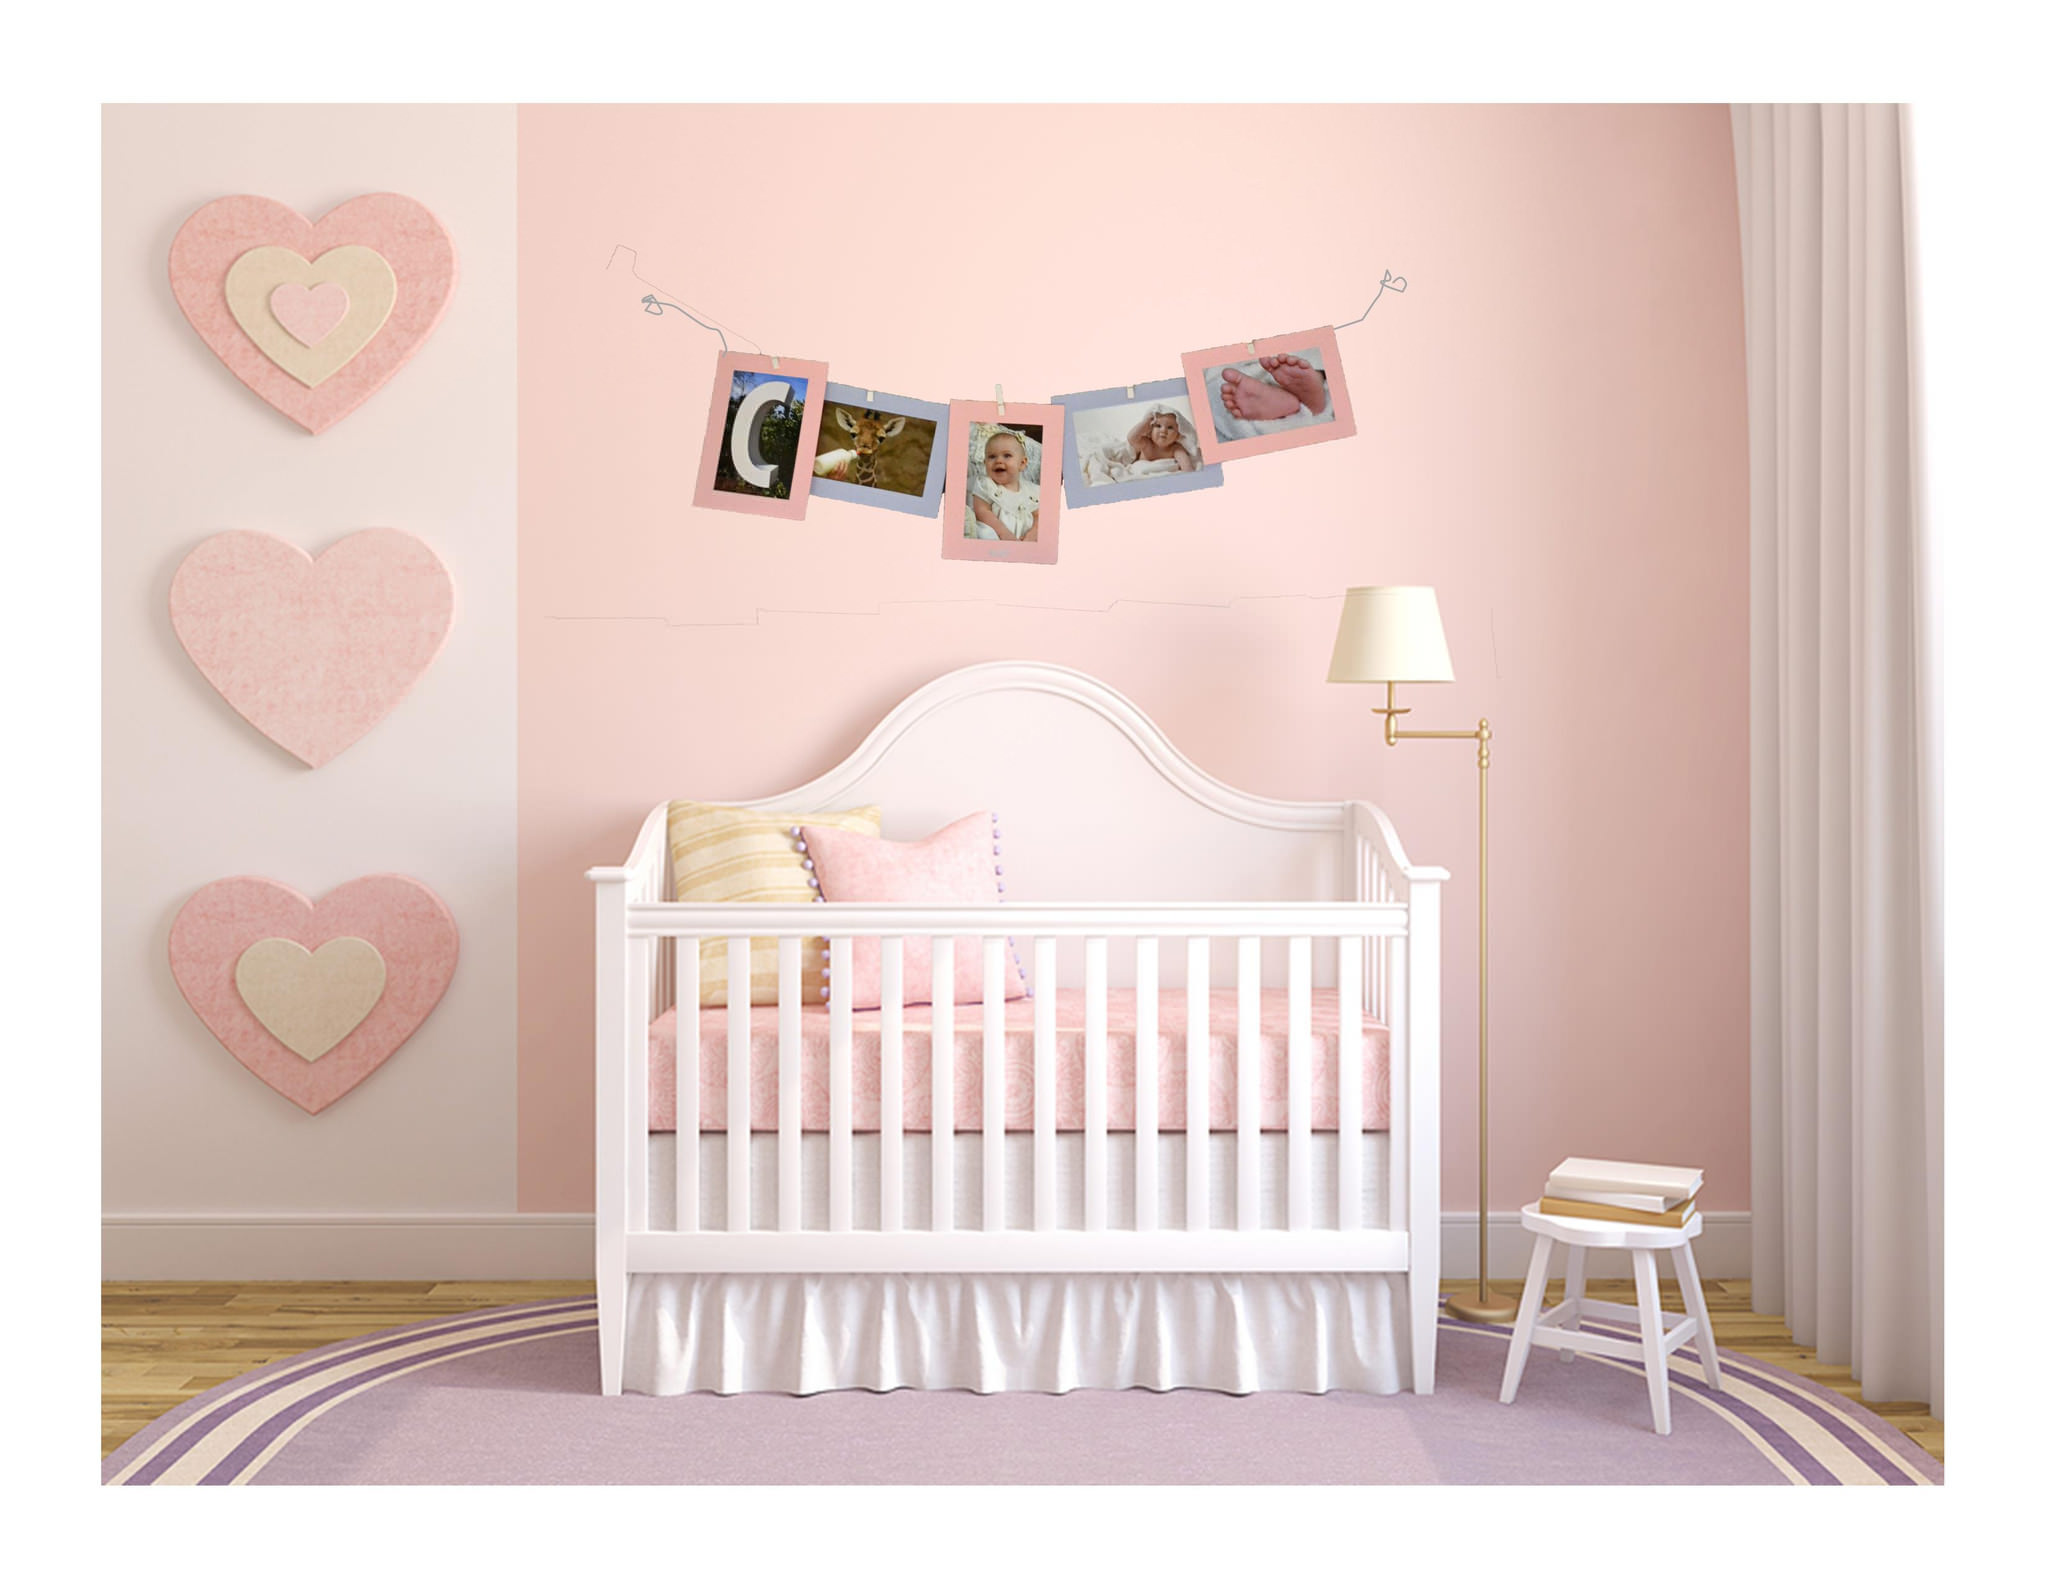 Baby girl soft pink lilac 1d4e1737 1678 453e 8427 385eaaa7a8f9 2048x2048 image